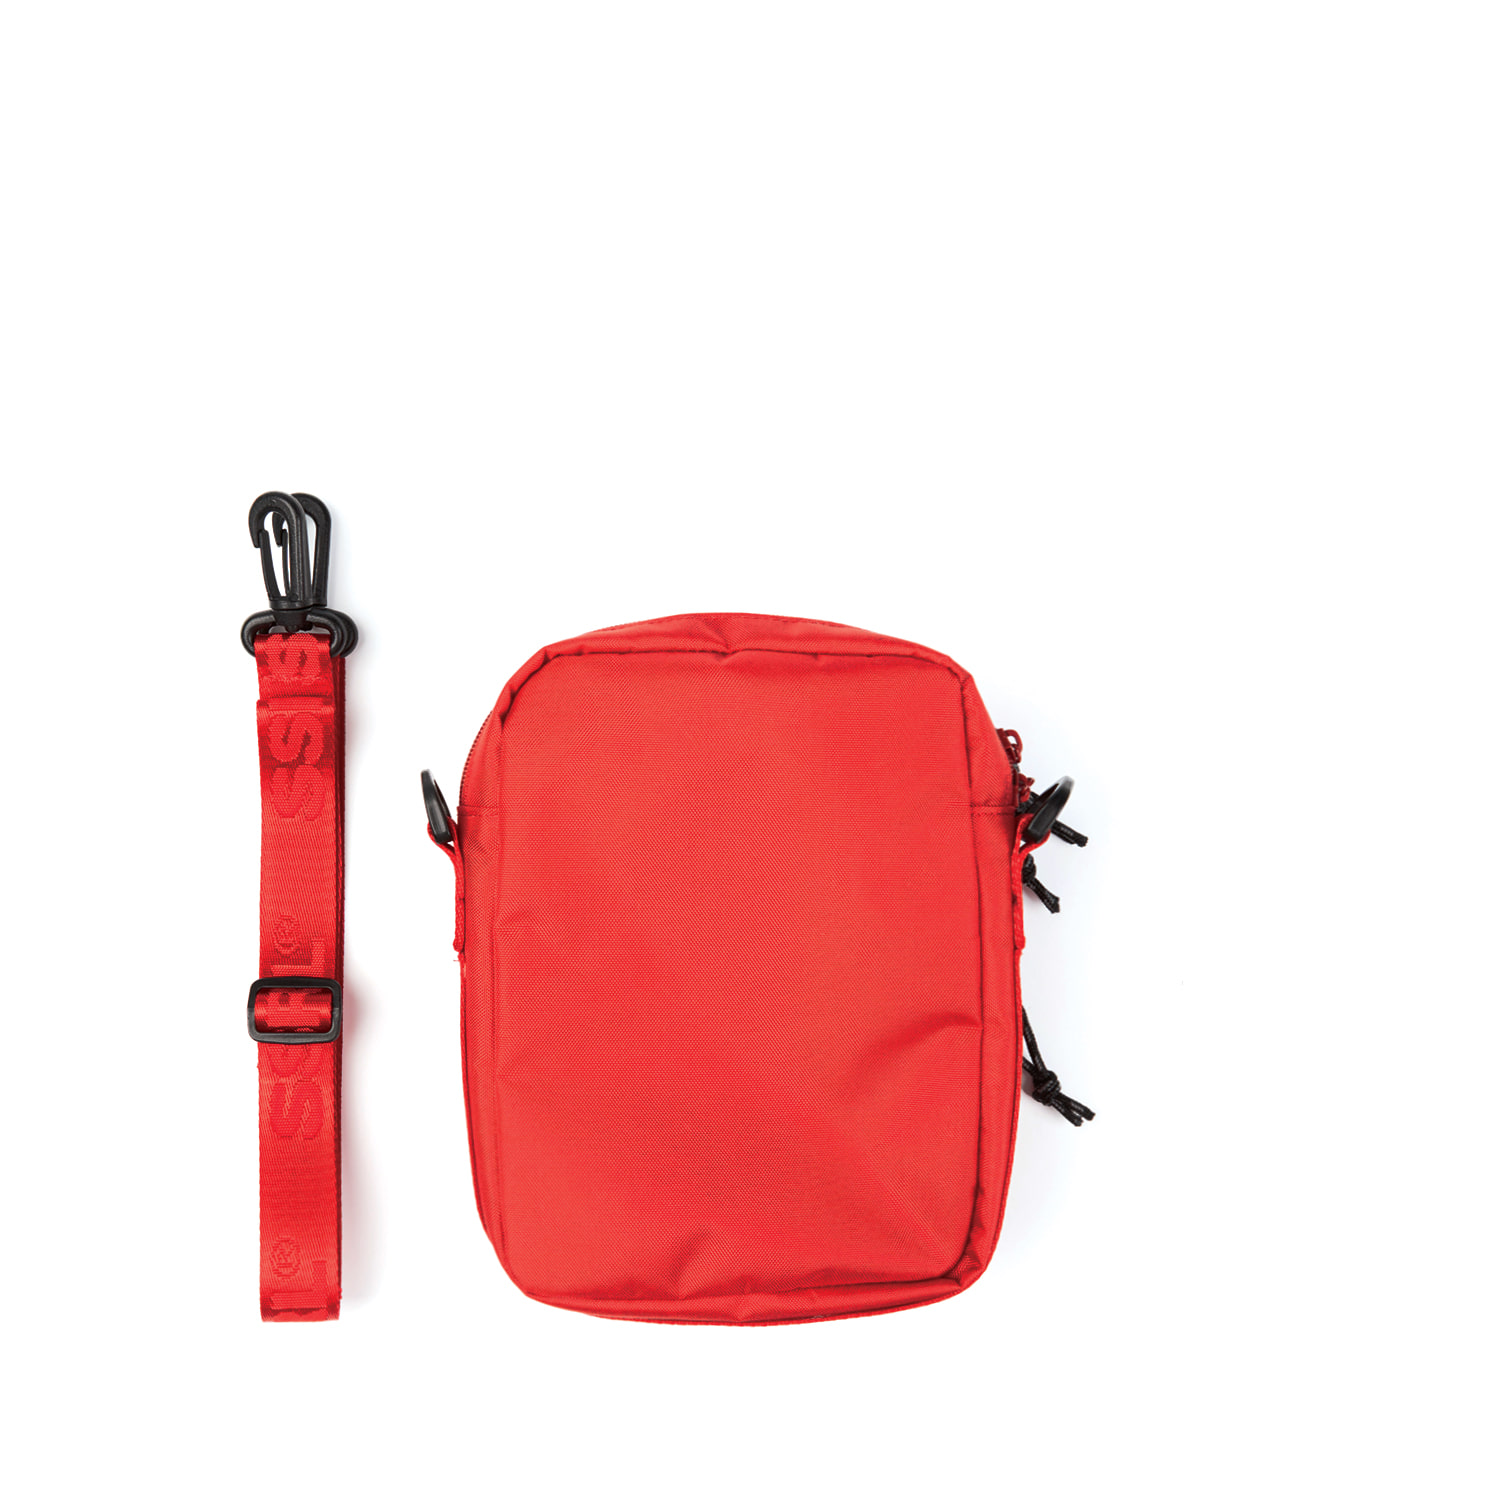 nylon cross bag / red